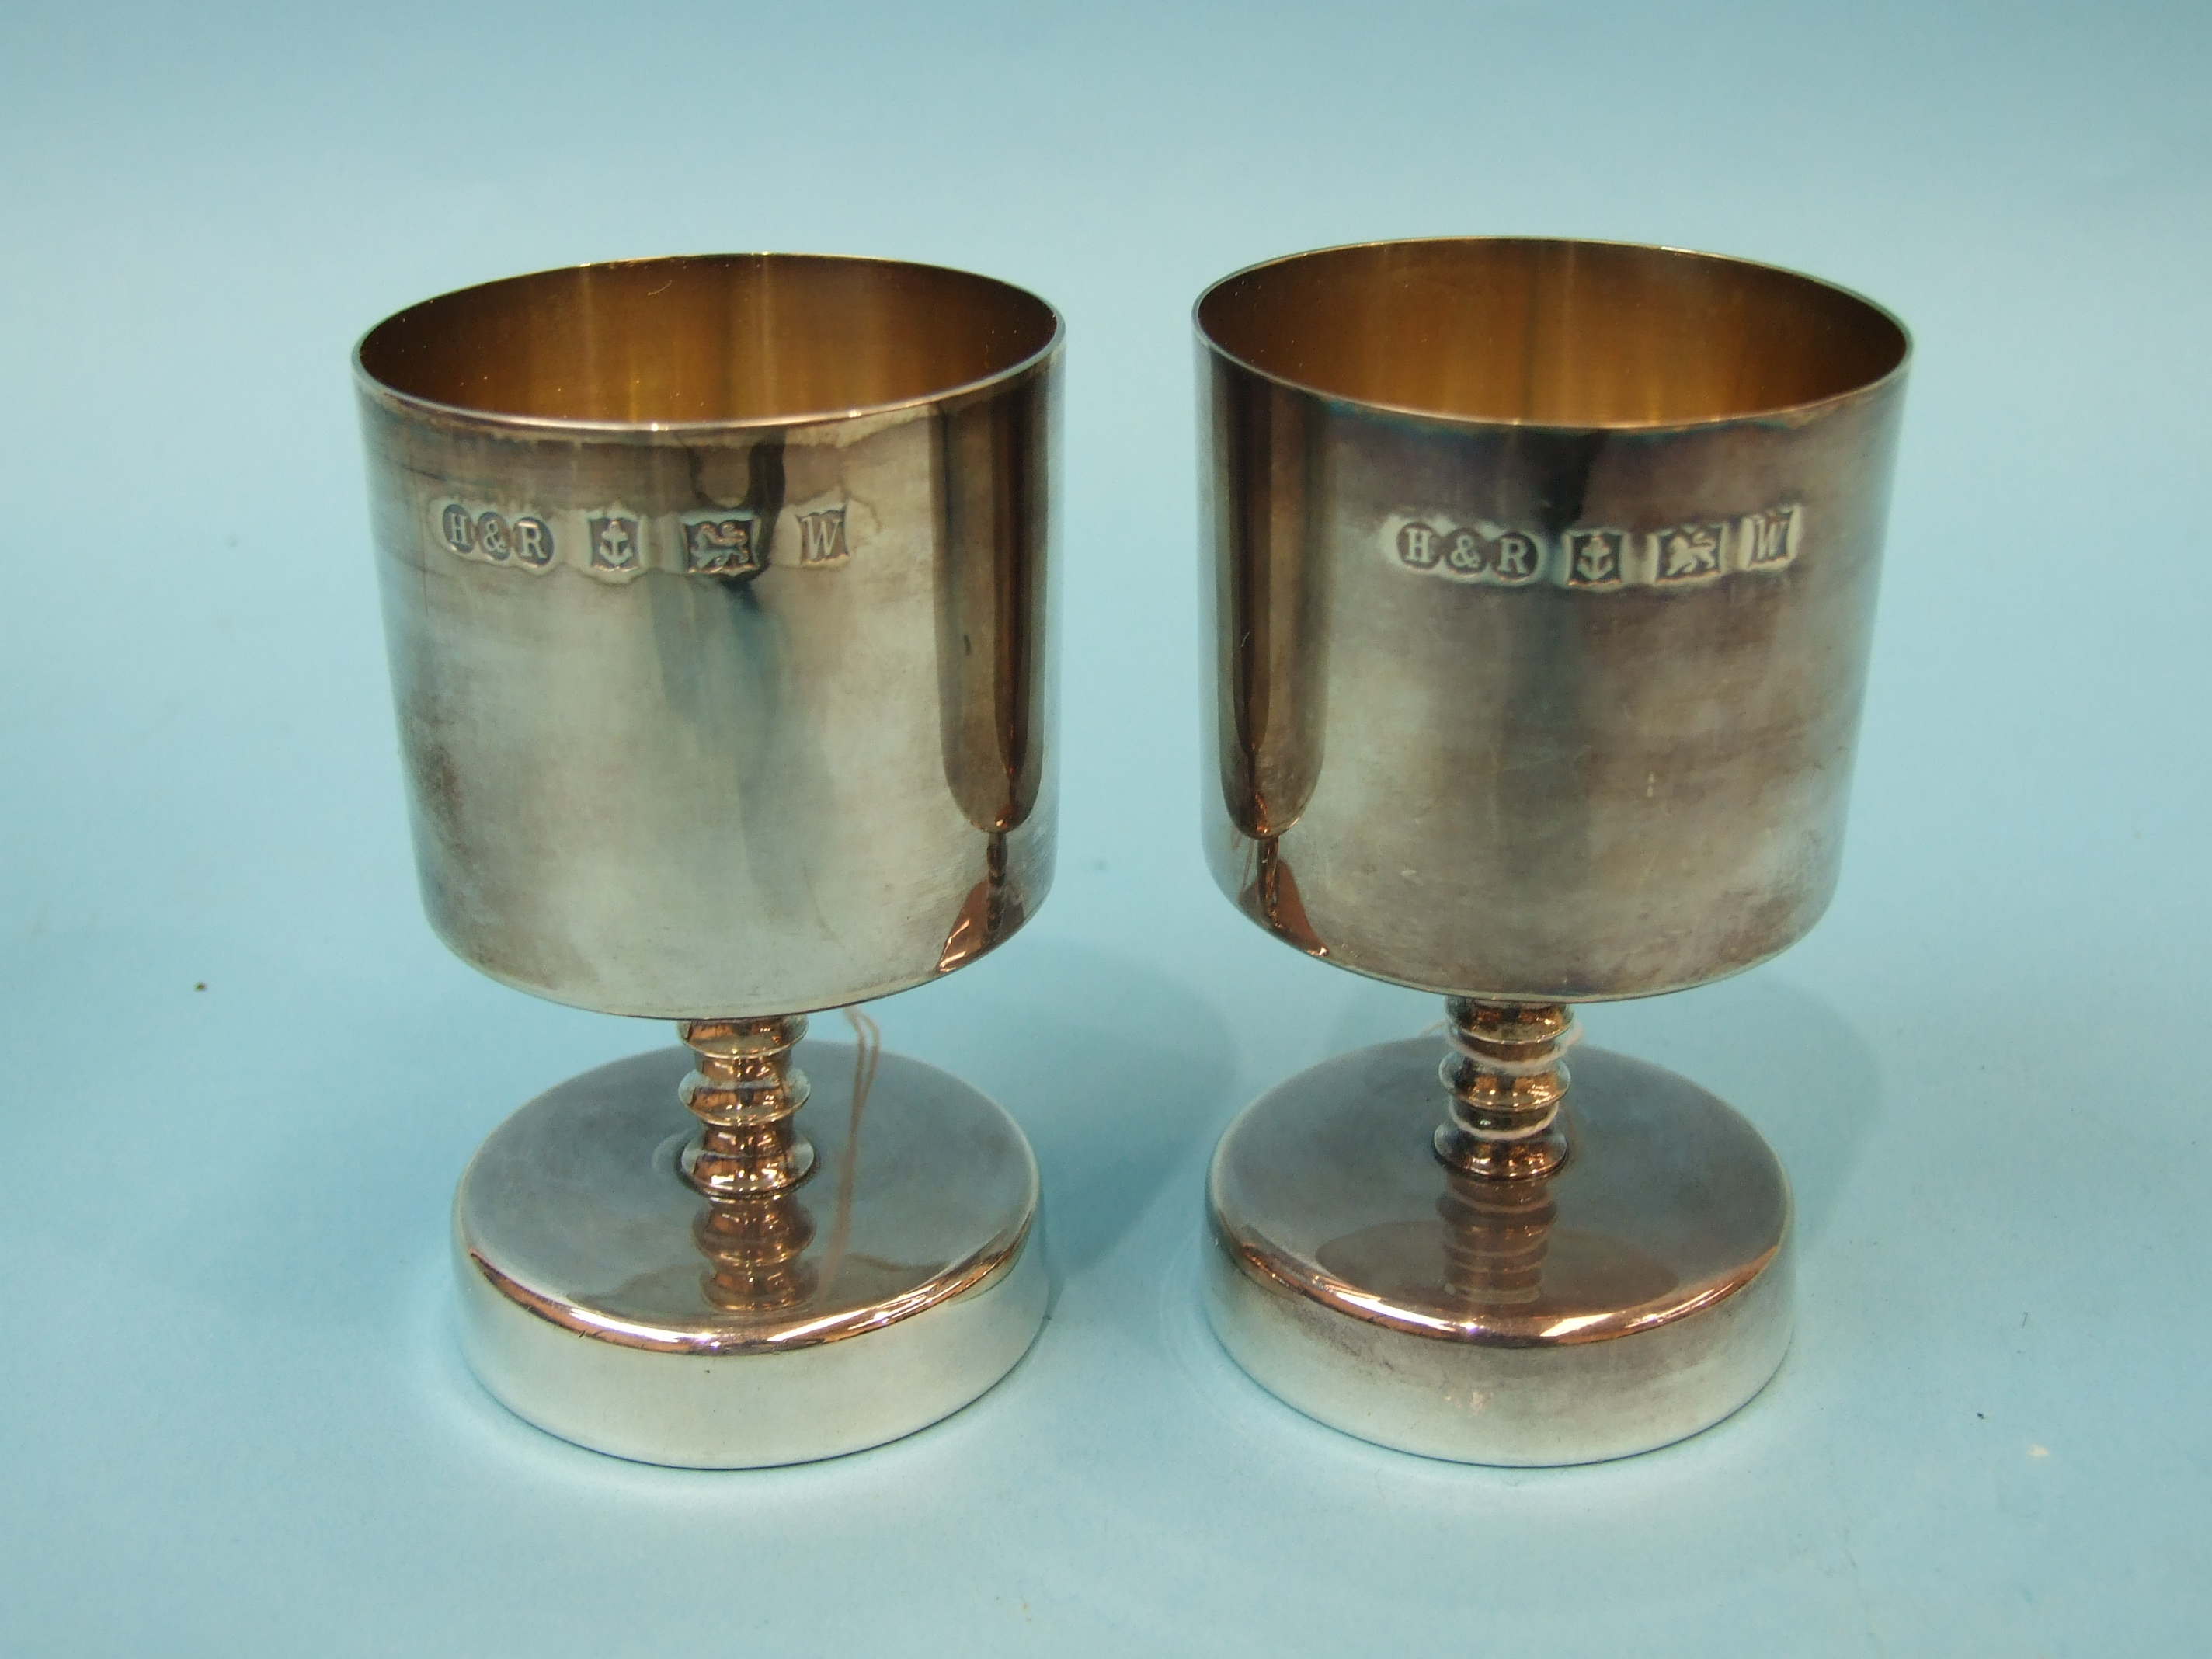 Lot 339 - A pair of modern silver goblets of squat form, each with slightly-tapered bowl and knopped stem